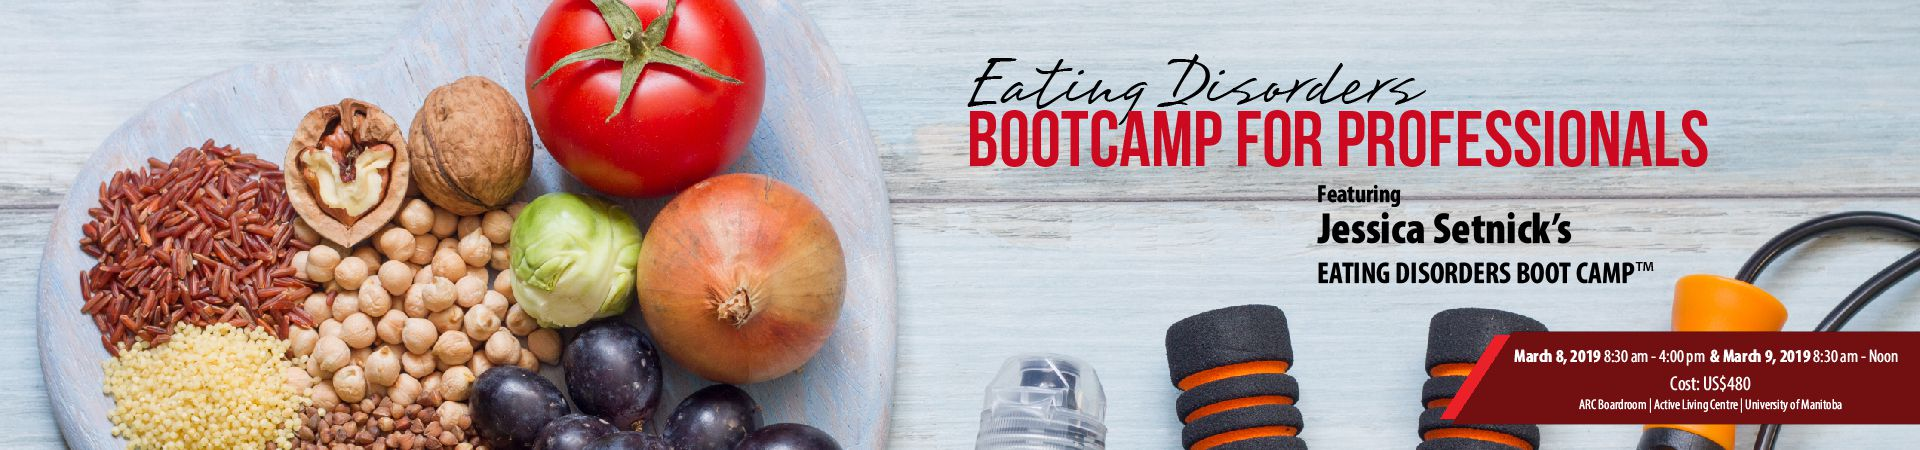 Eating Disorders Boot Camp